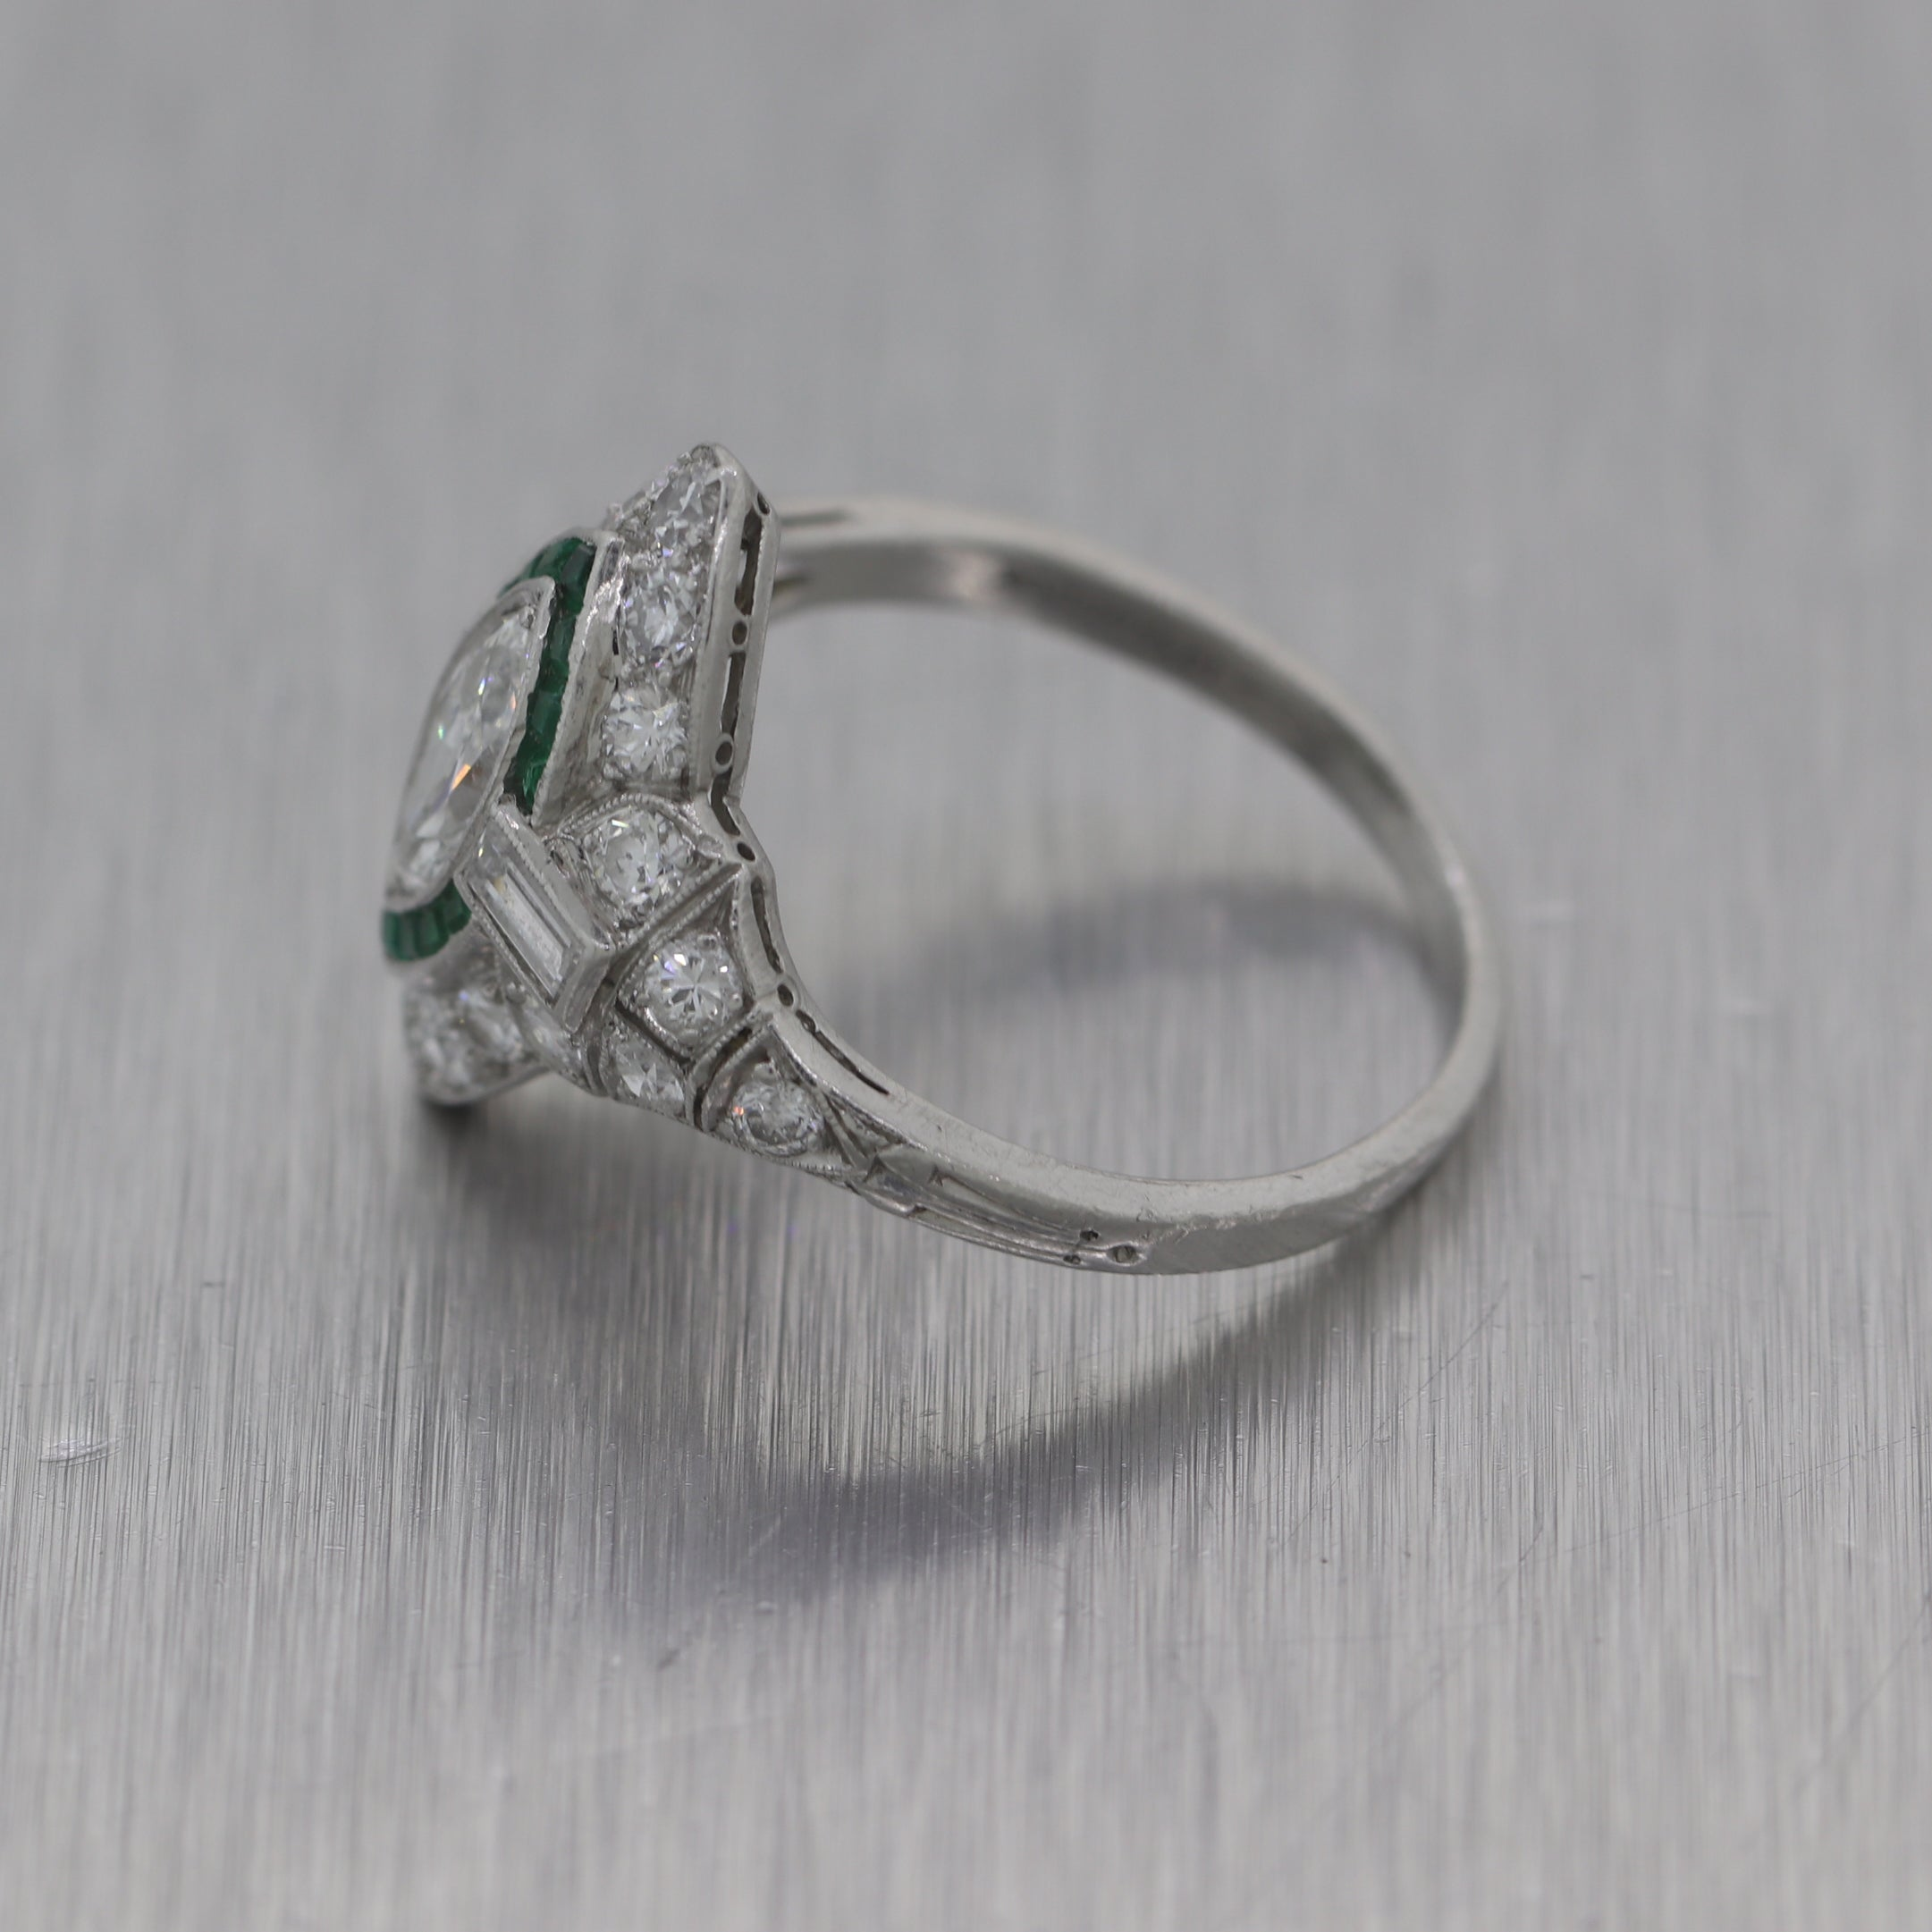 1930's Antique Art Deco Platinum 1ctw Emerald & Diamond Ring